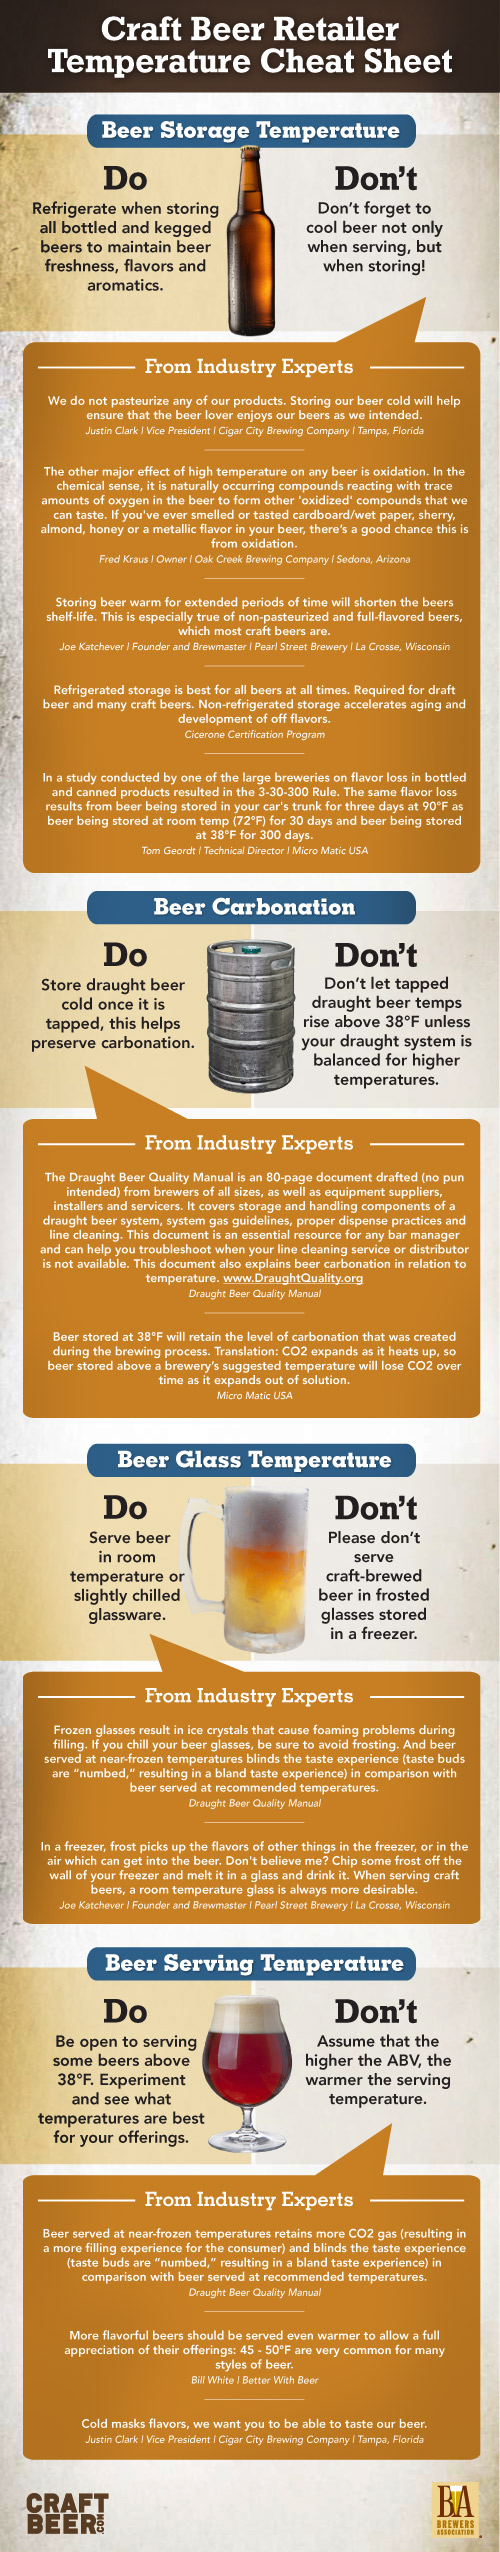 the case against frosted glassware